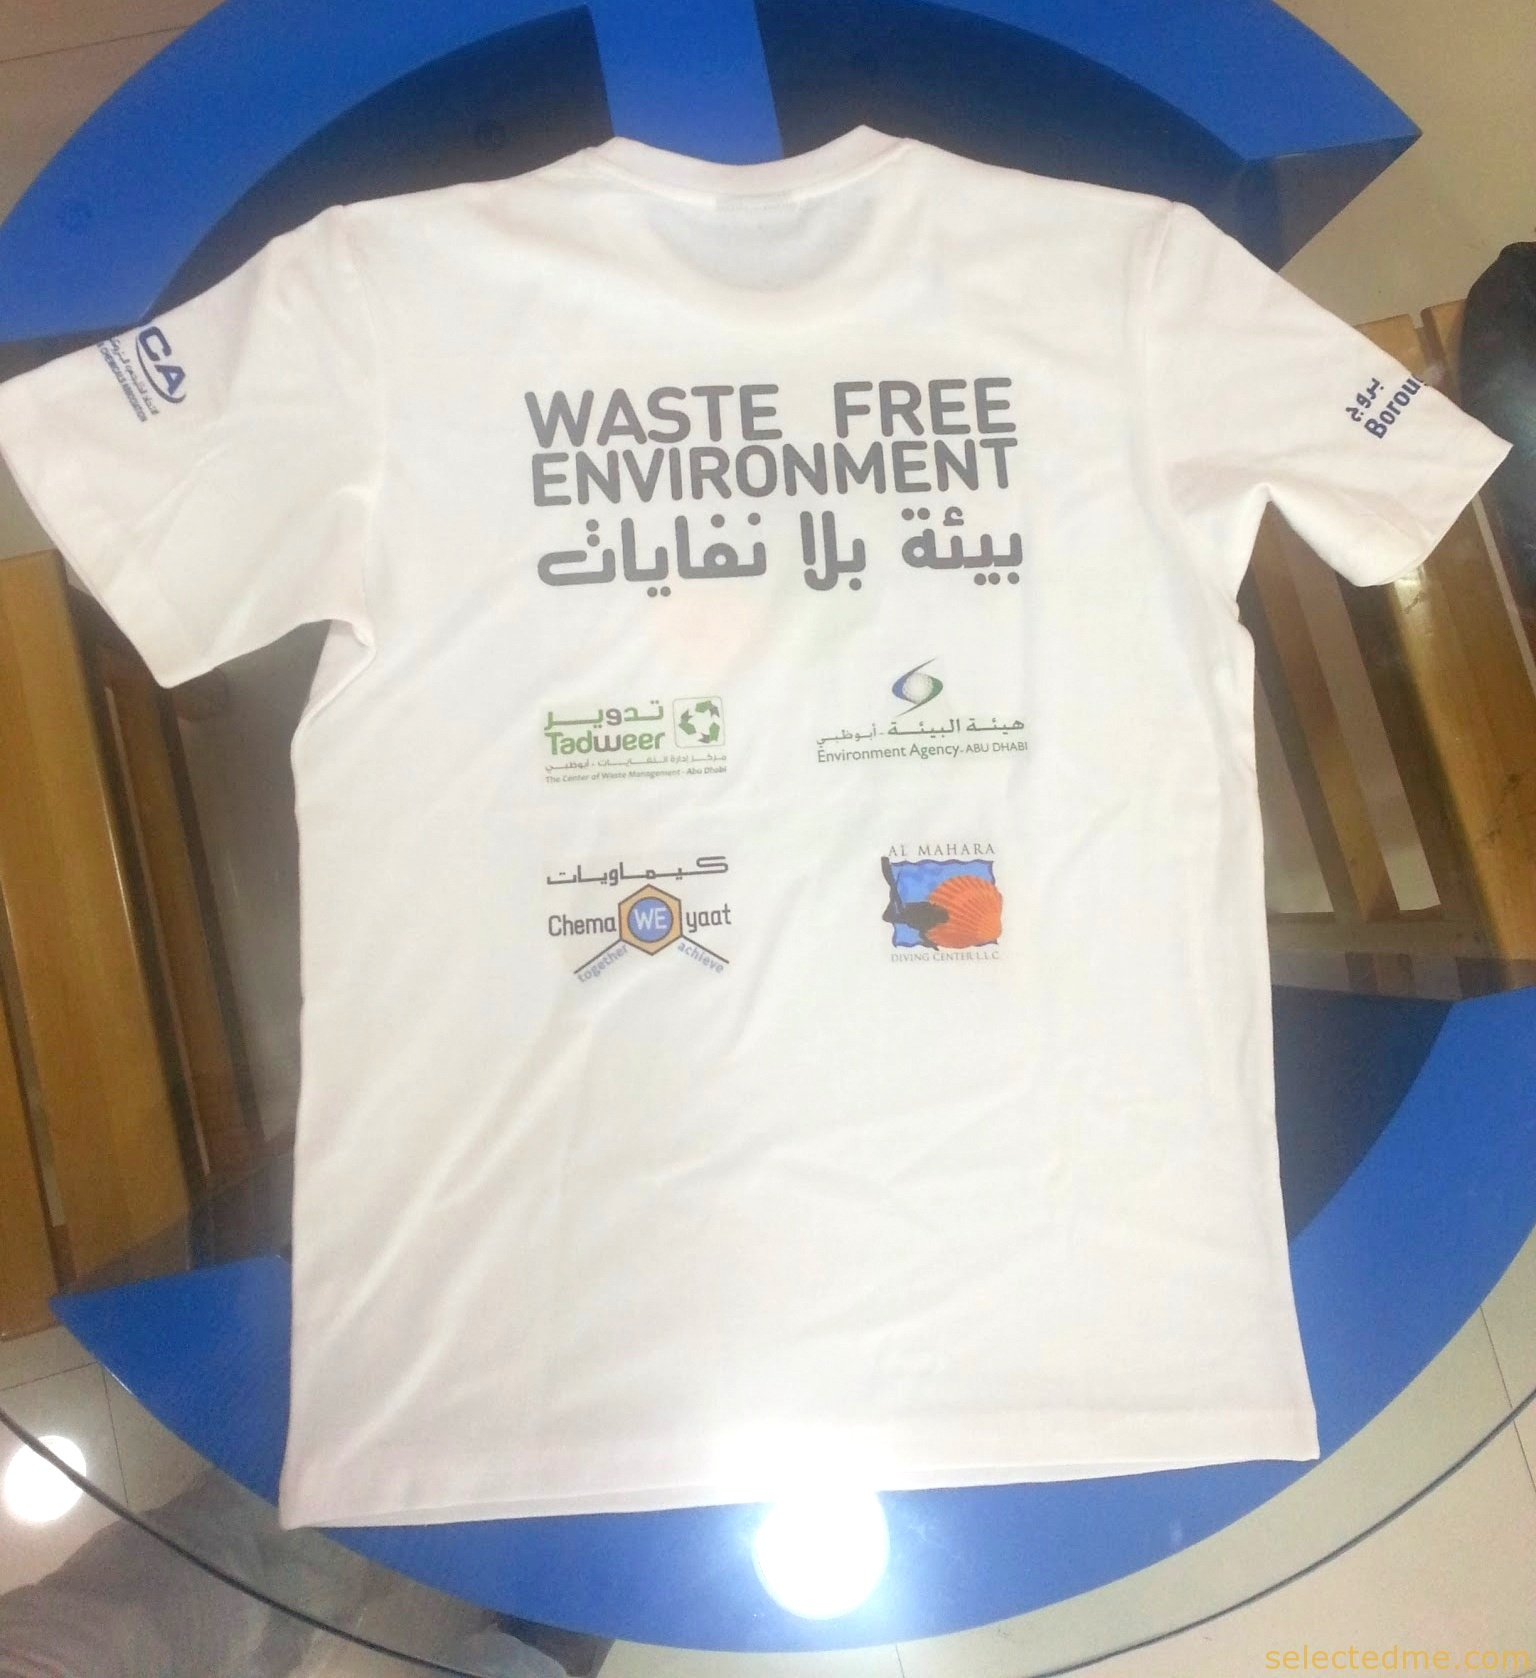 a081442e9 T Shirts Printing Dubai, Make impressive print on Tees